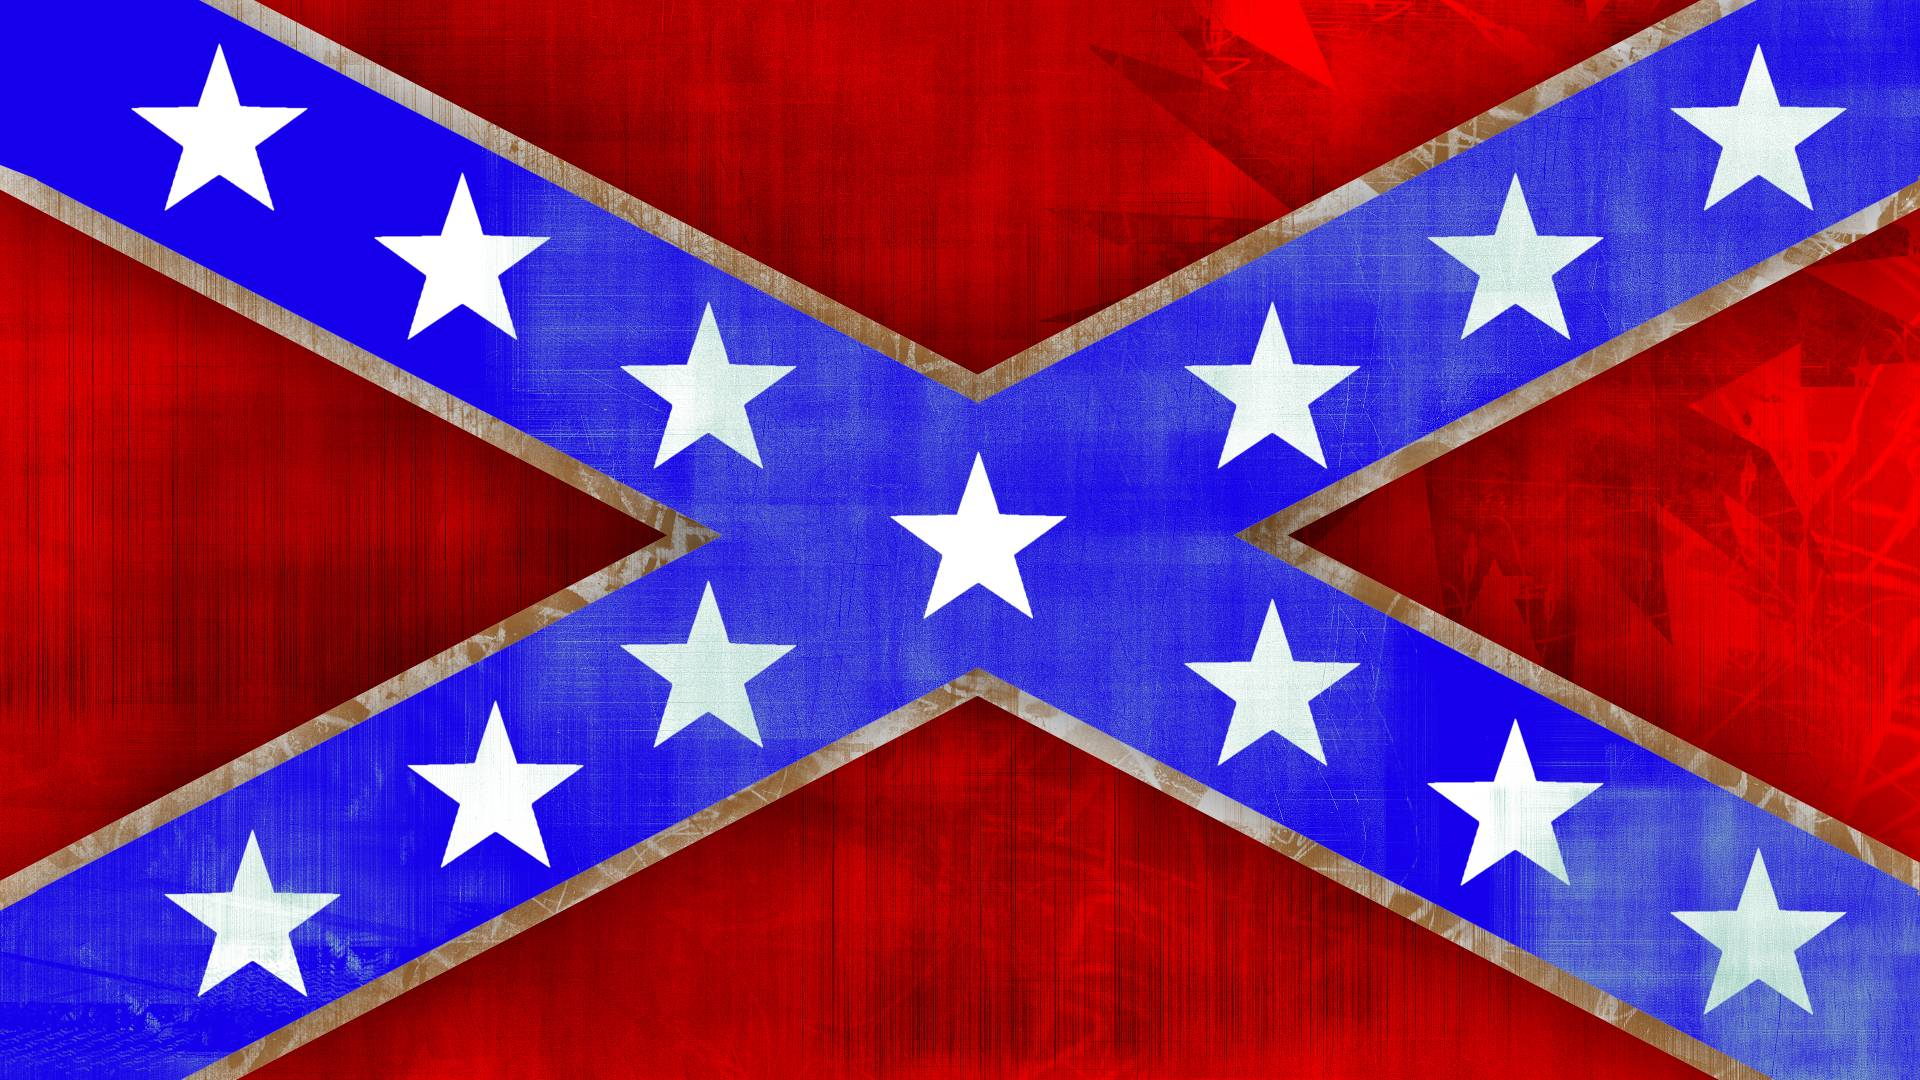 Cool Confederate Flag Wallpapers Images & Pictures - Becuo